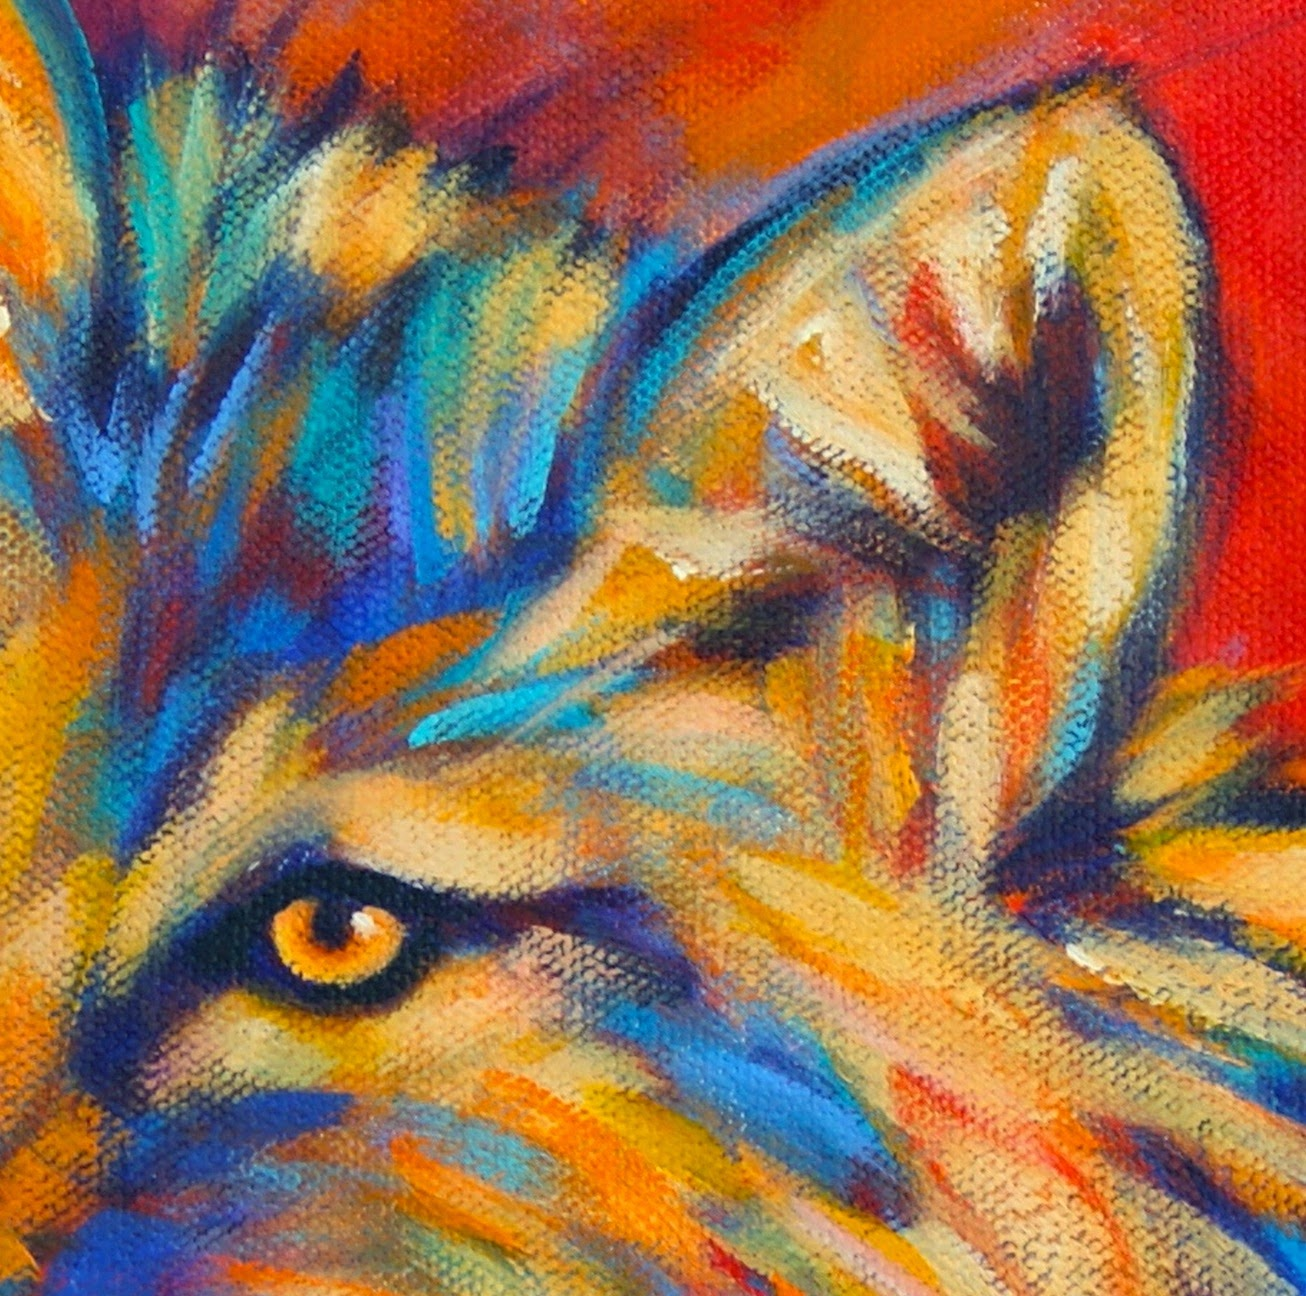 Paintings by Theresa Paden: Coyote Painting in Bright ...